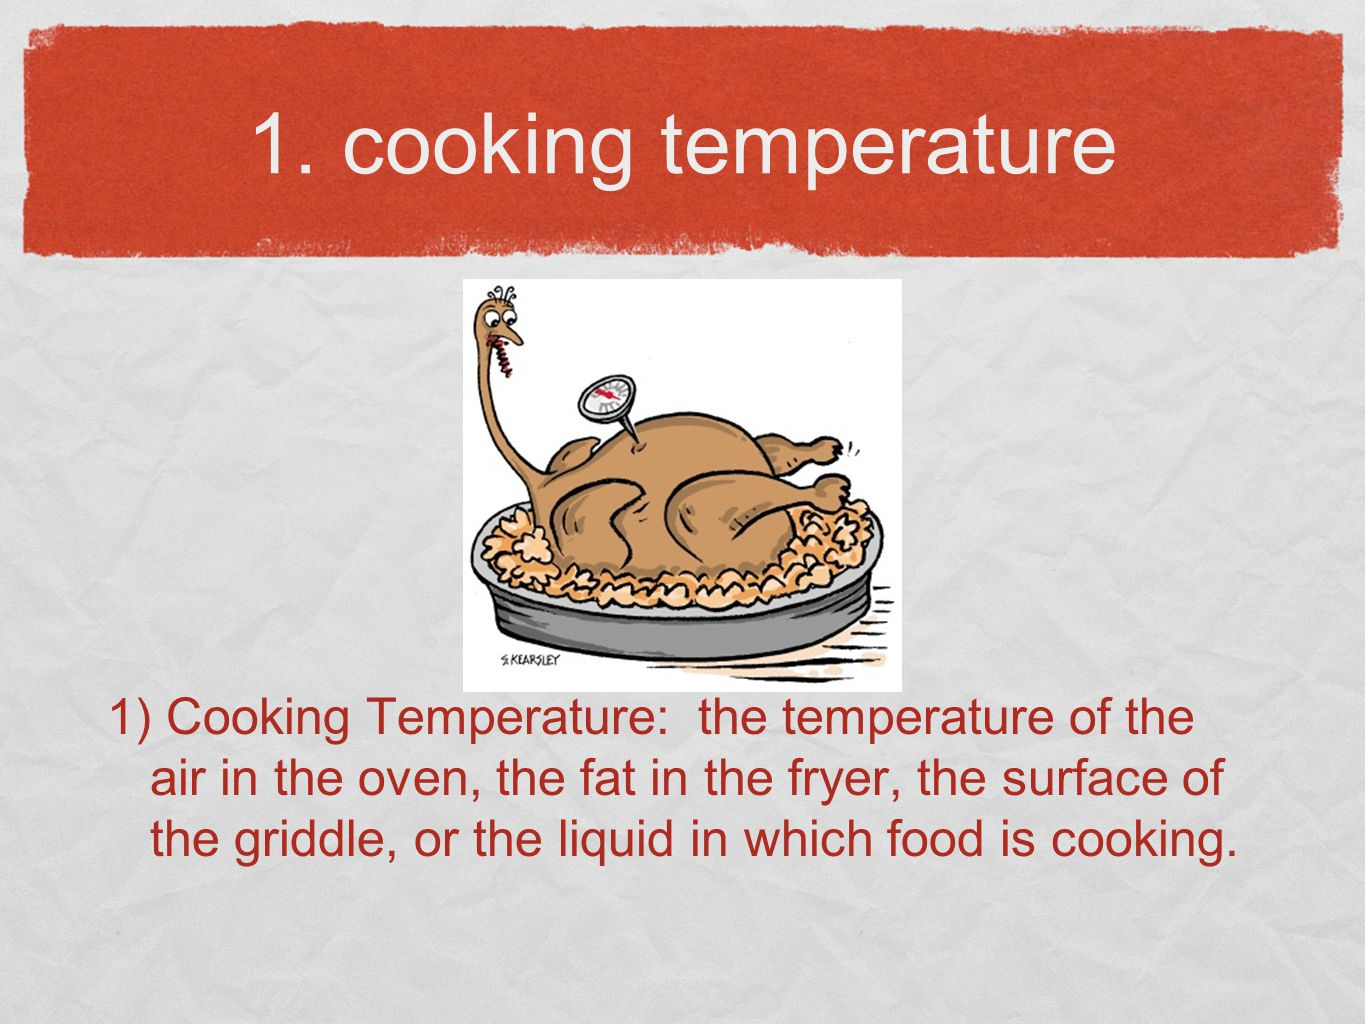 1. cooking temperature 1) Cooking Temperature: the temperature of the air in the oven, the fat in the fryer, the surface of the griddle, or the liquid